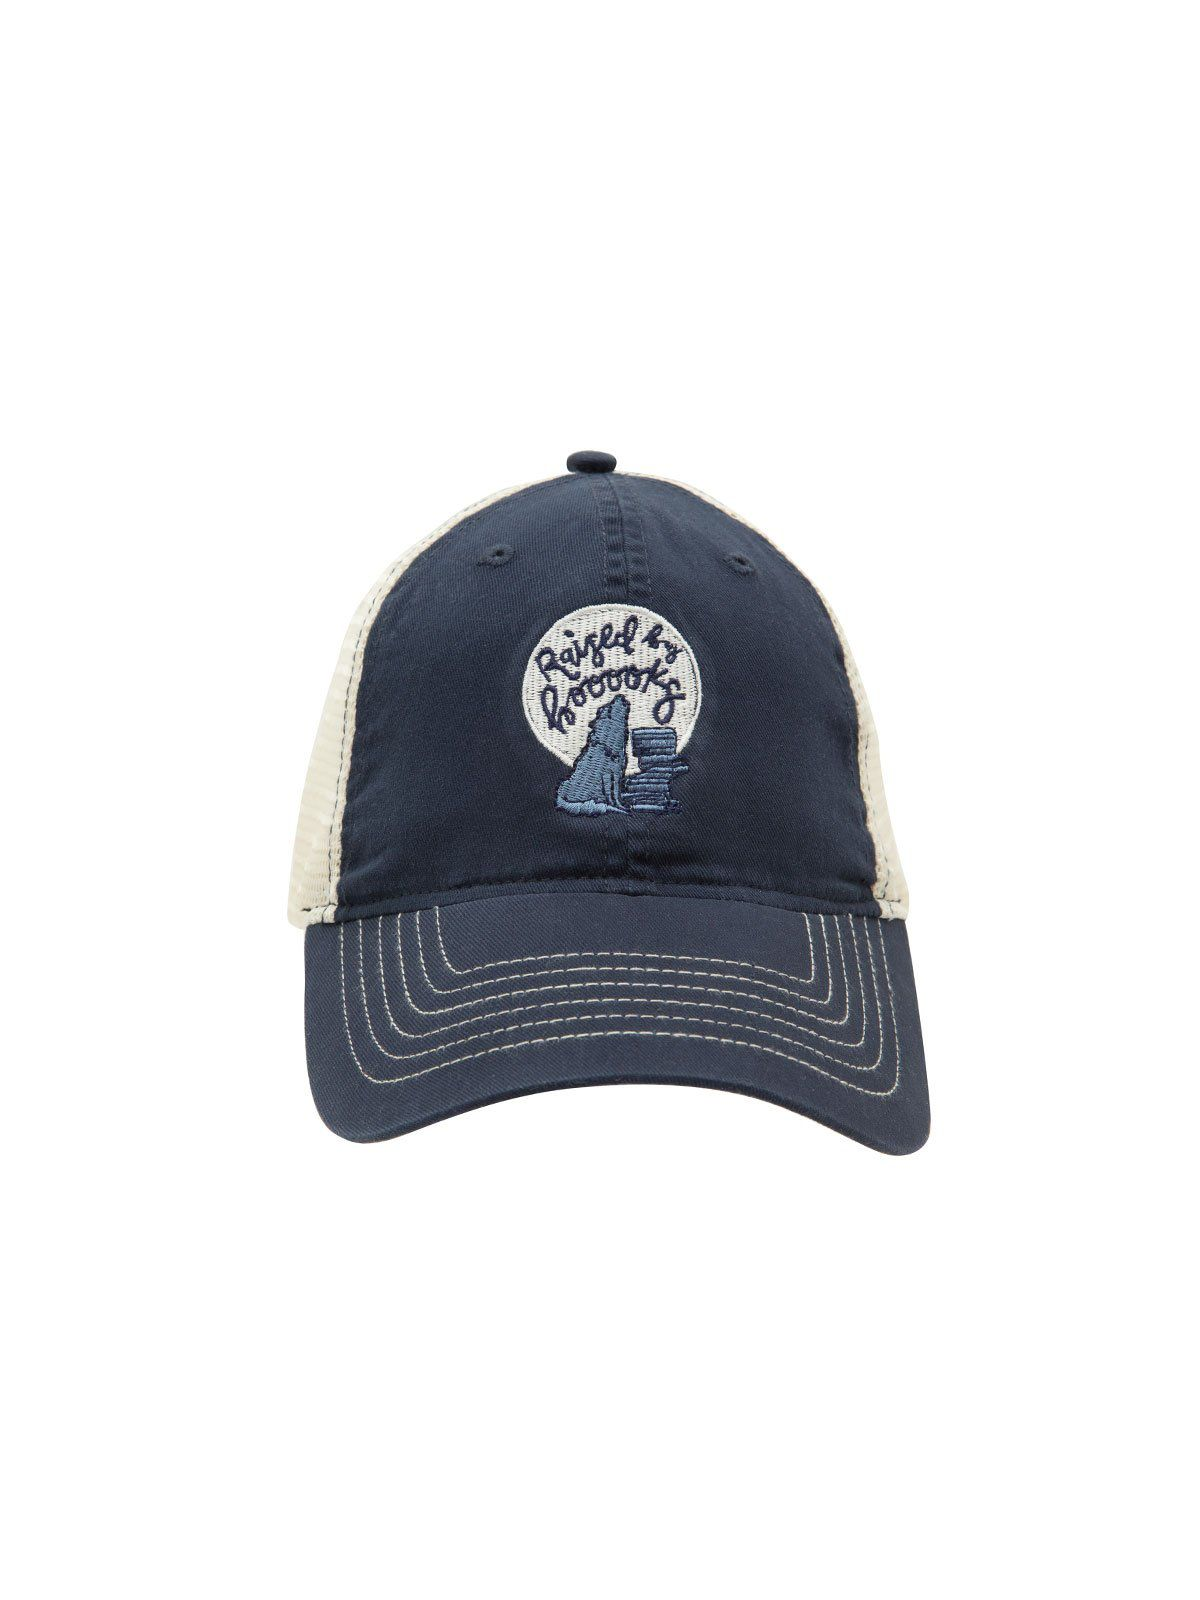 Worn by a booooks cap, with a wolf howling at the moon beside a stack of books